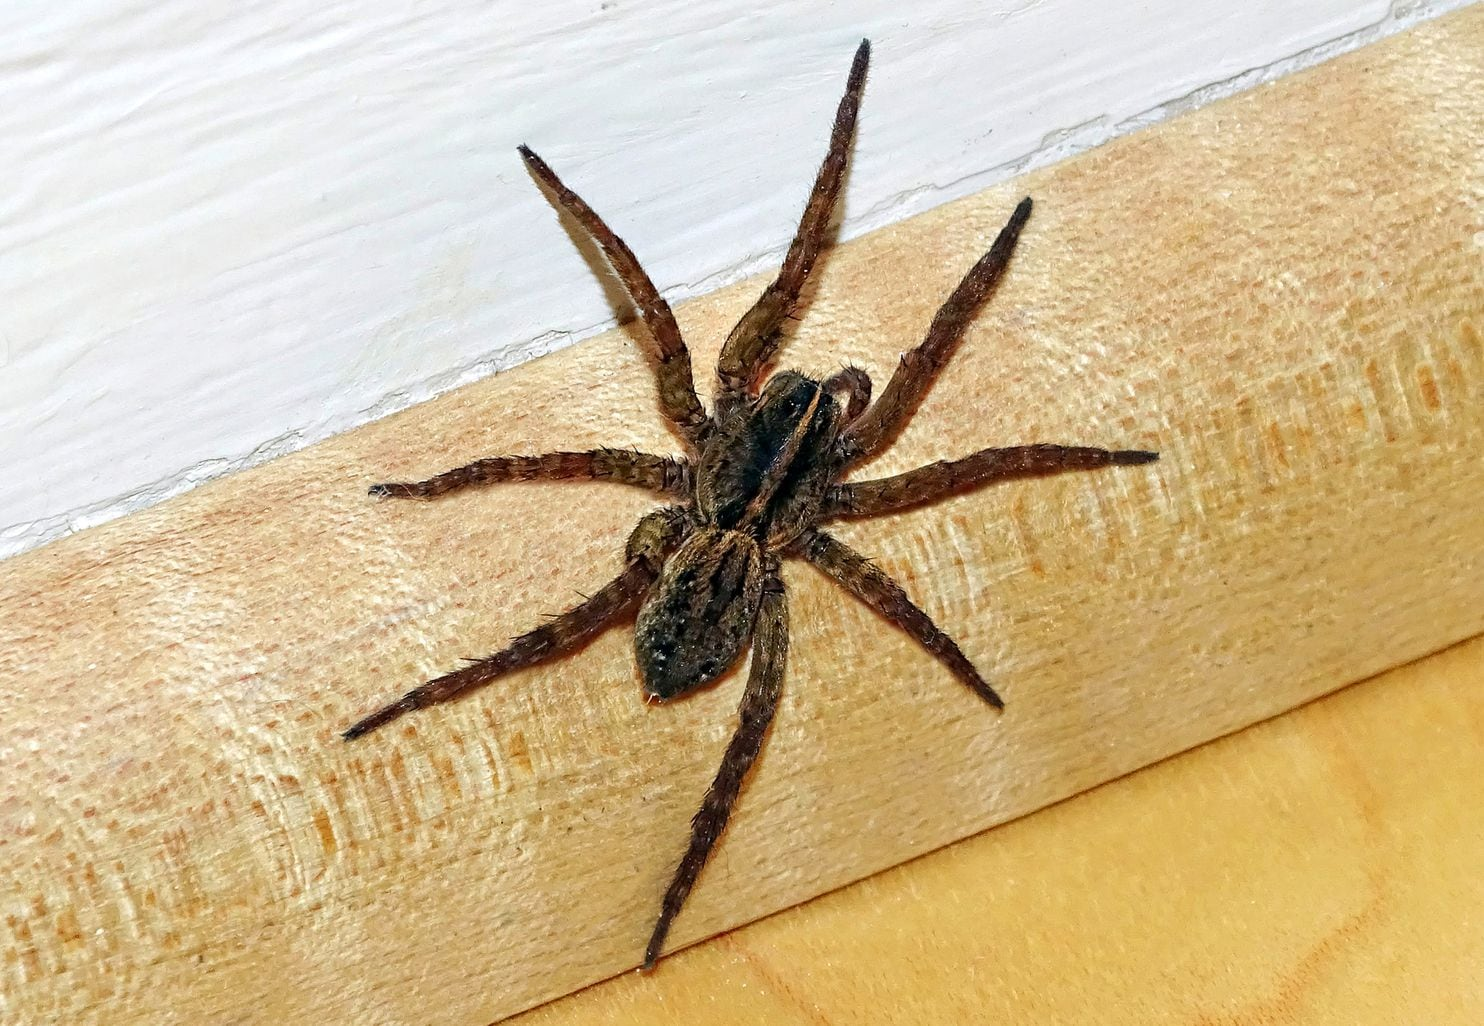 Large Brown Spiders Common Greer South Carolina